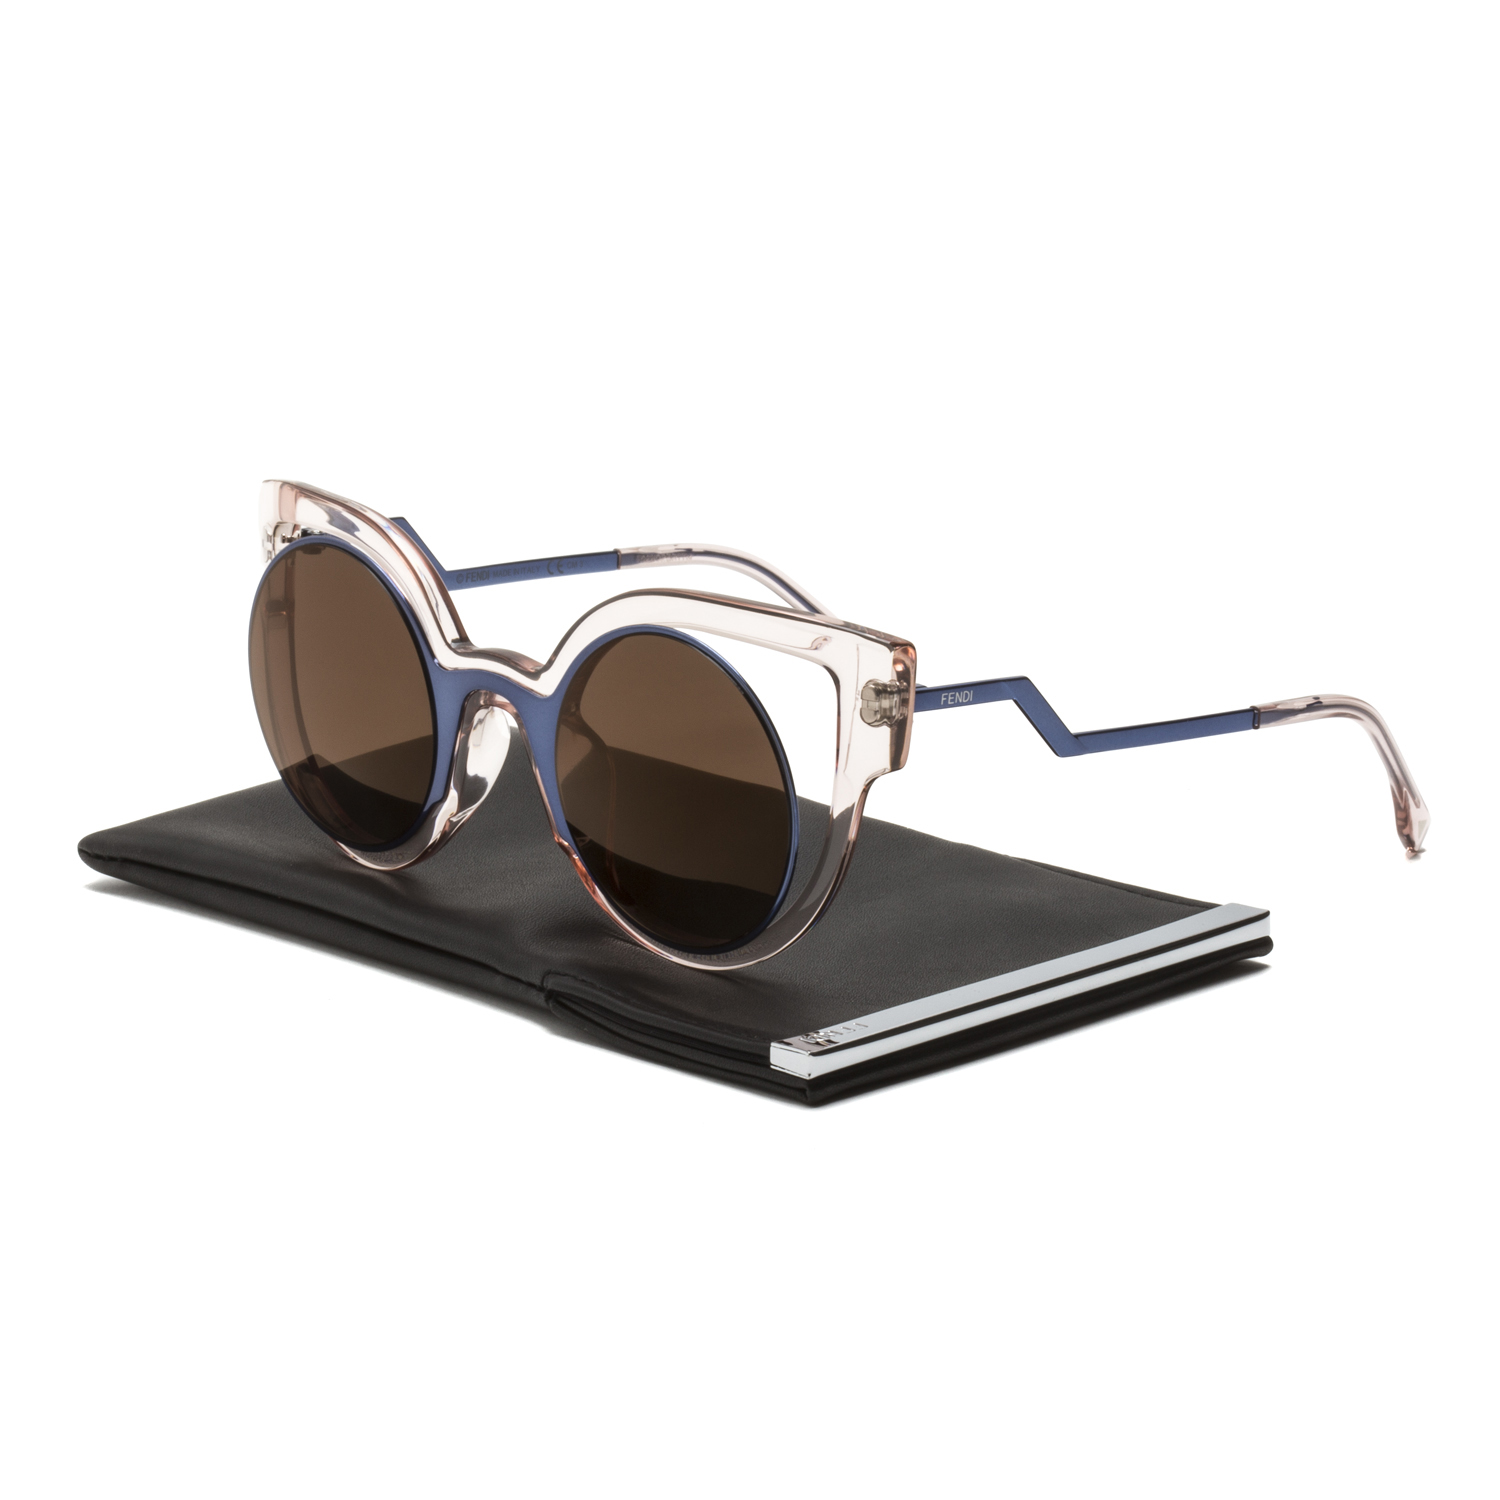 bd8d171909f2 Details about Fendi FF 0137 S Paradeyes Sunglasses NT7LC Blue Transparent Pink  Brown Mirrored